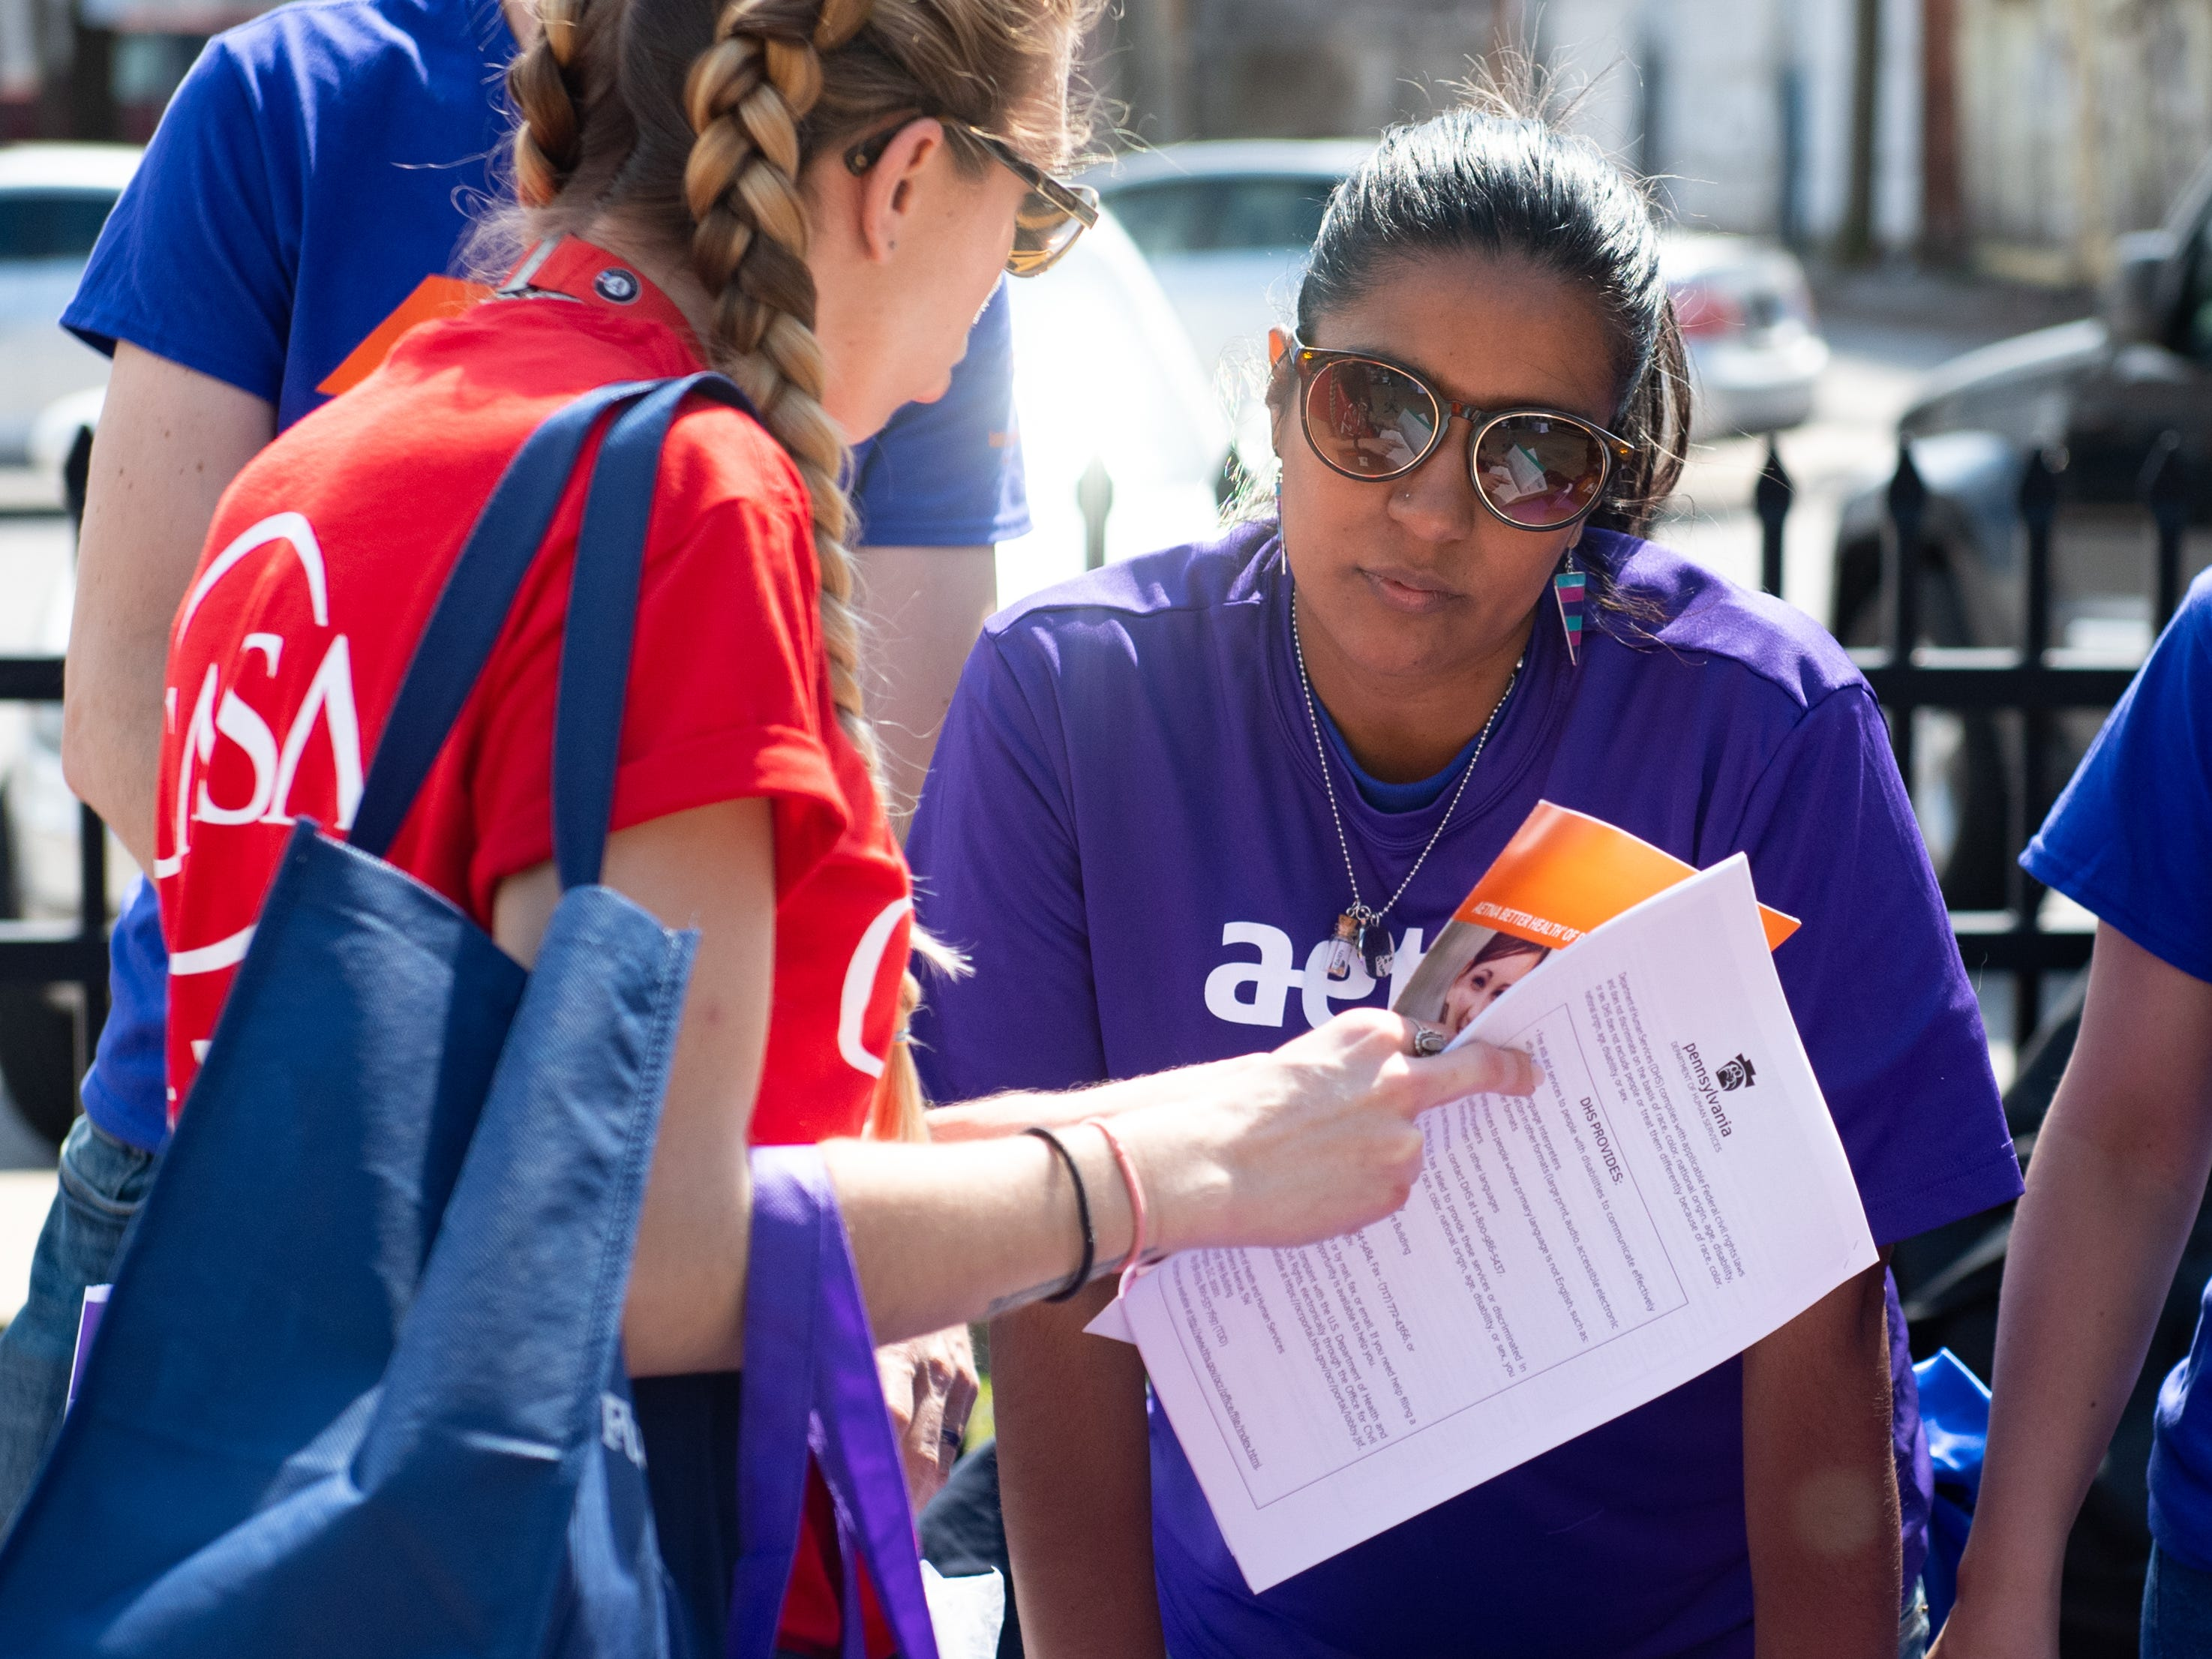 Zuiry Gaytan tells a visitor more about Aetna during the Adelante Festival at Renaissance Park, March 30, 2019.